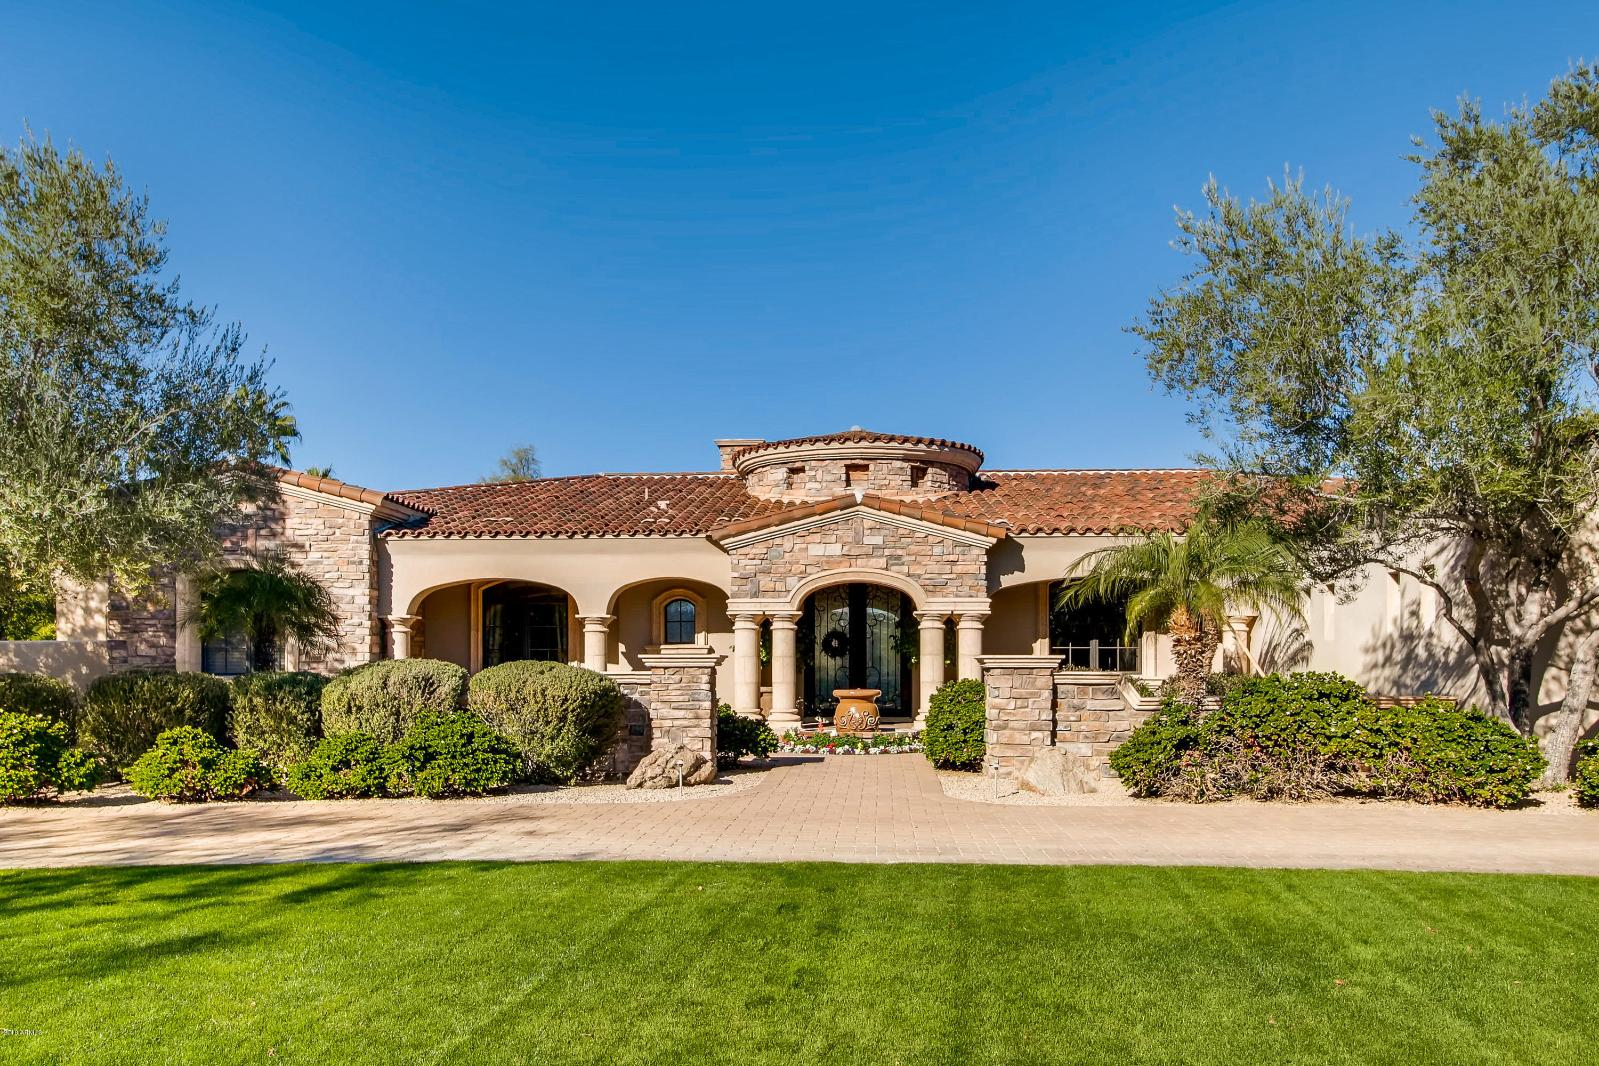 paradise valley hindu singles 6682 e indian bend rd, paradise valley, az is a 7012 sq ft, 4 bed, 5 bath home listed on trulia for $3,475,000 in paradise valley, arizona.